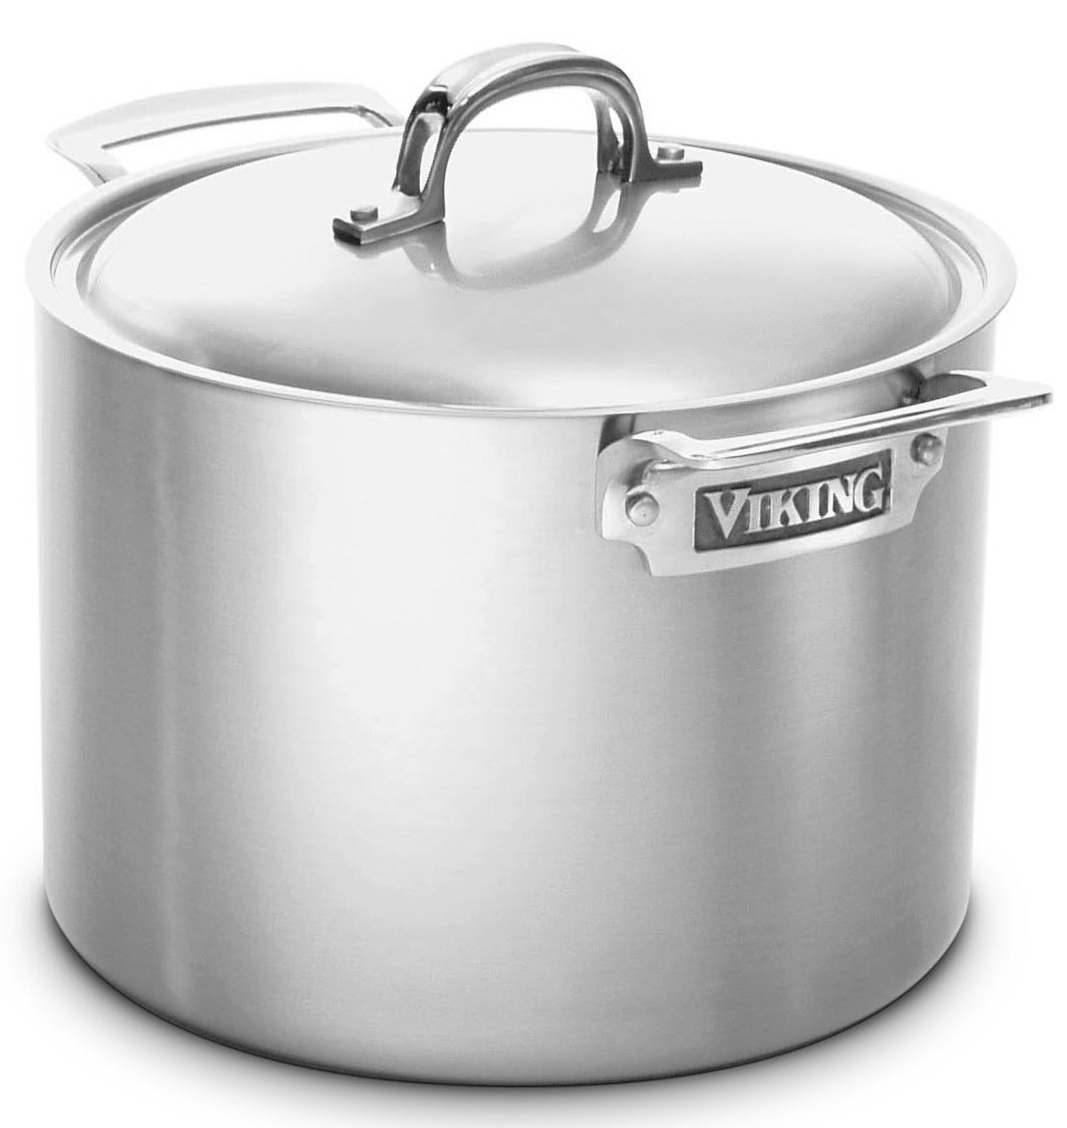 Viking Professional Stainless Steel Covered Stock Pot 8 Quart